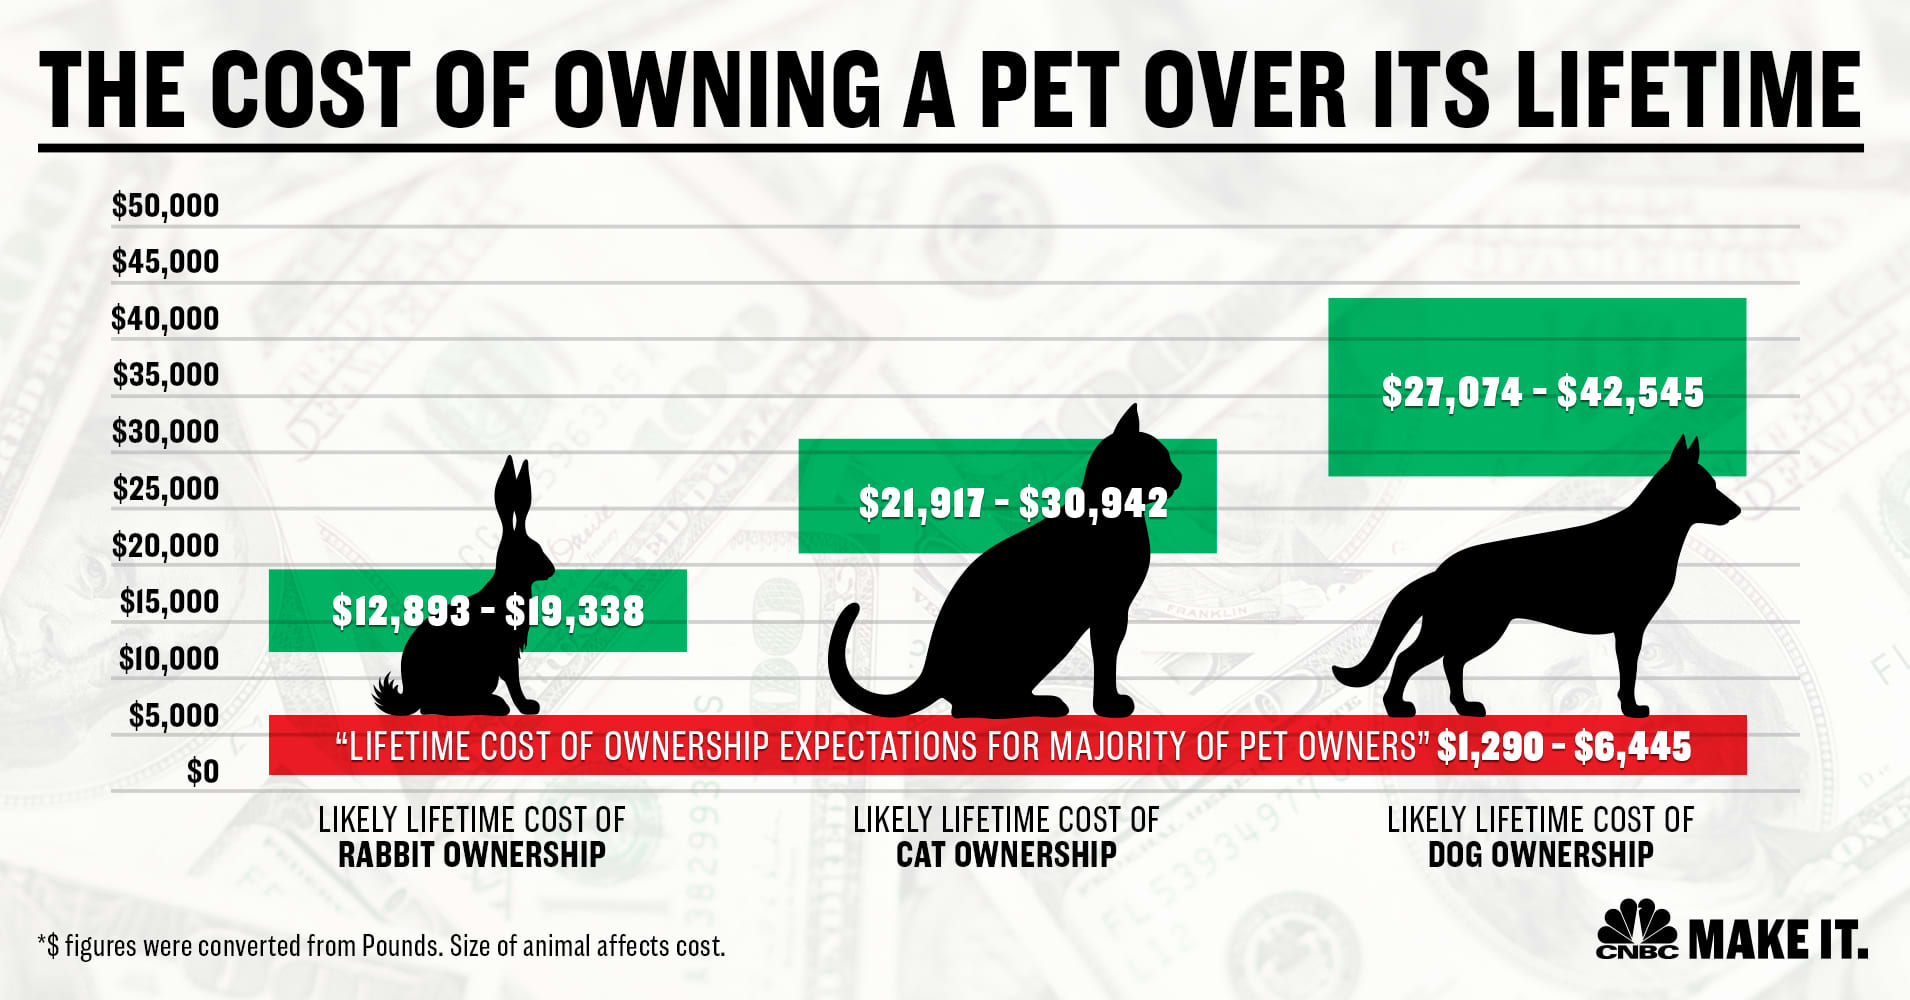 Make it Lifetime costs of pets graphic